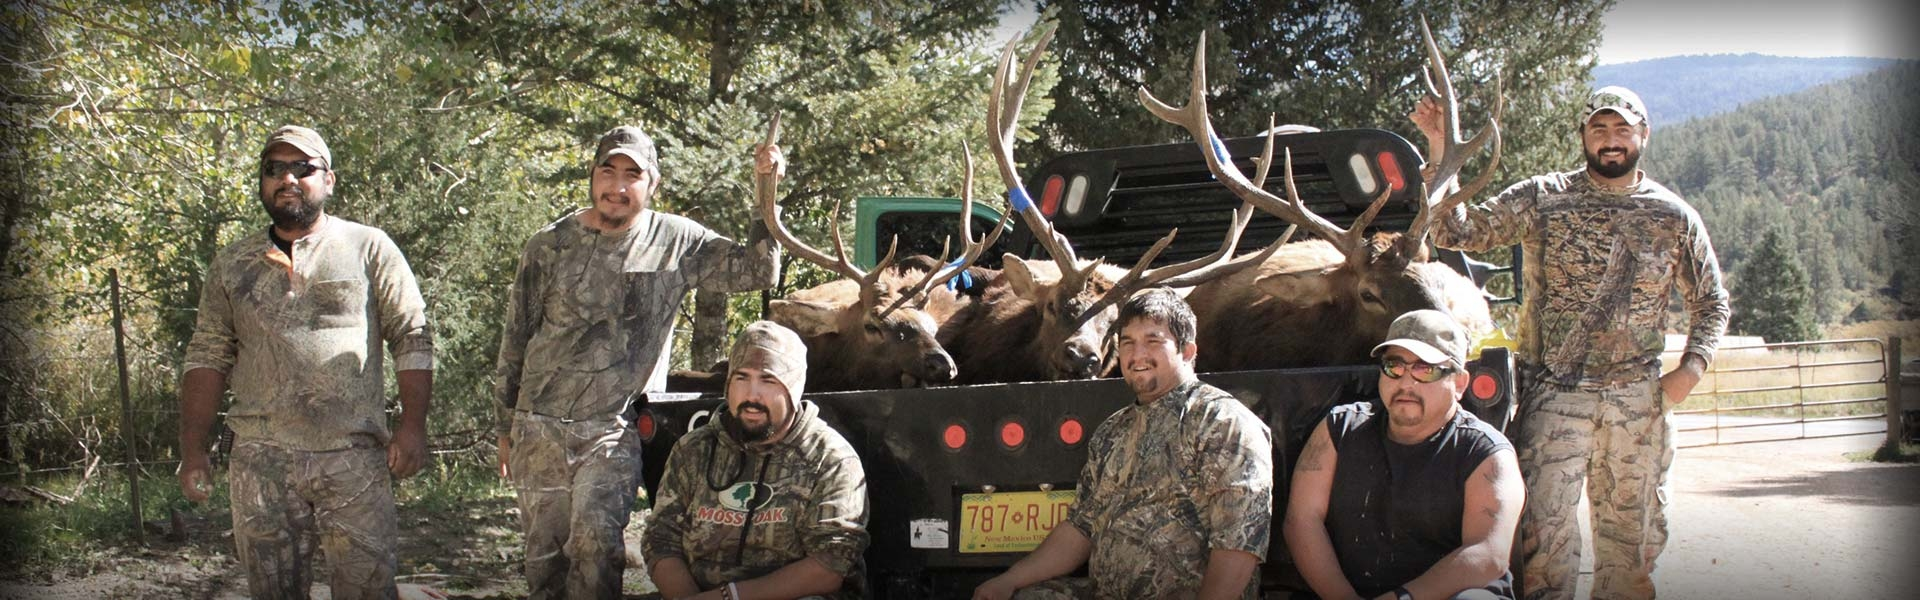 New Mexico Trophy Elk Hunts, Experience the Bugle.